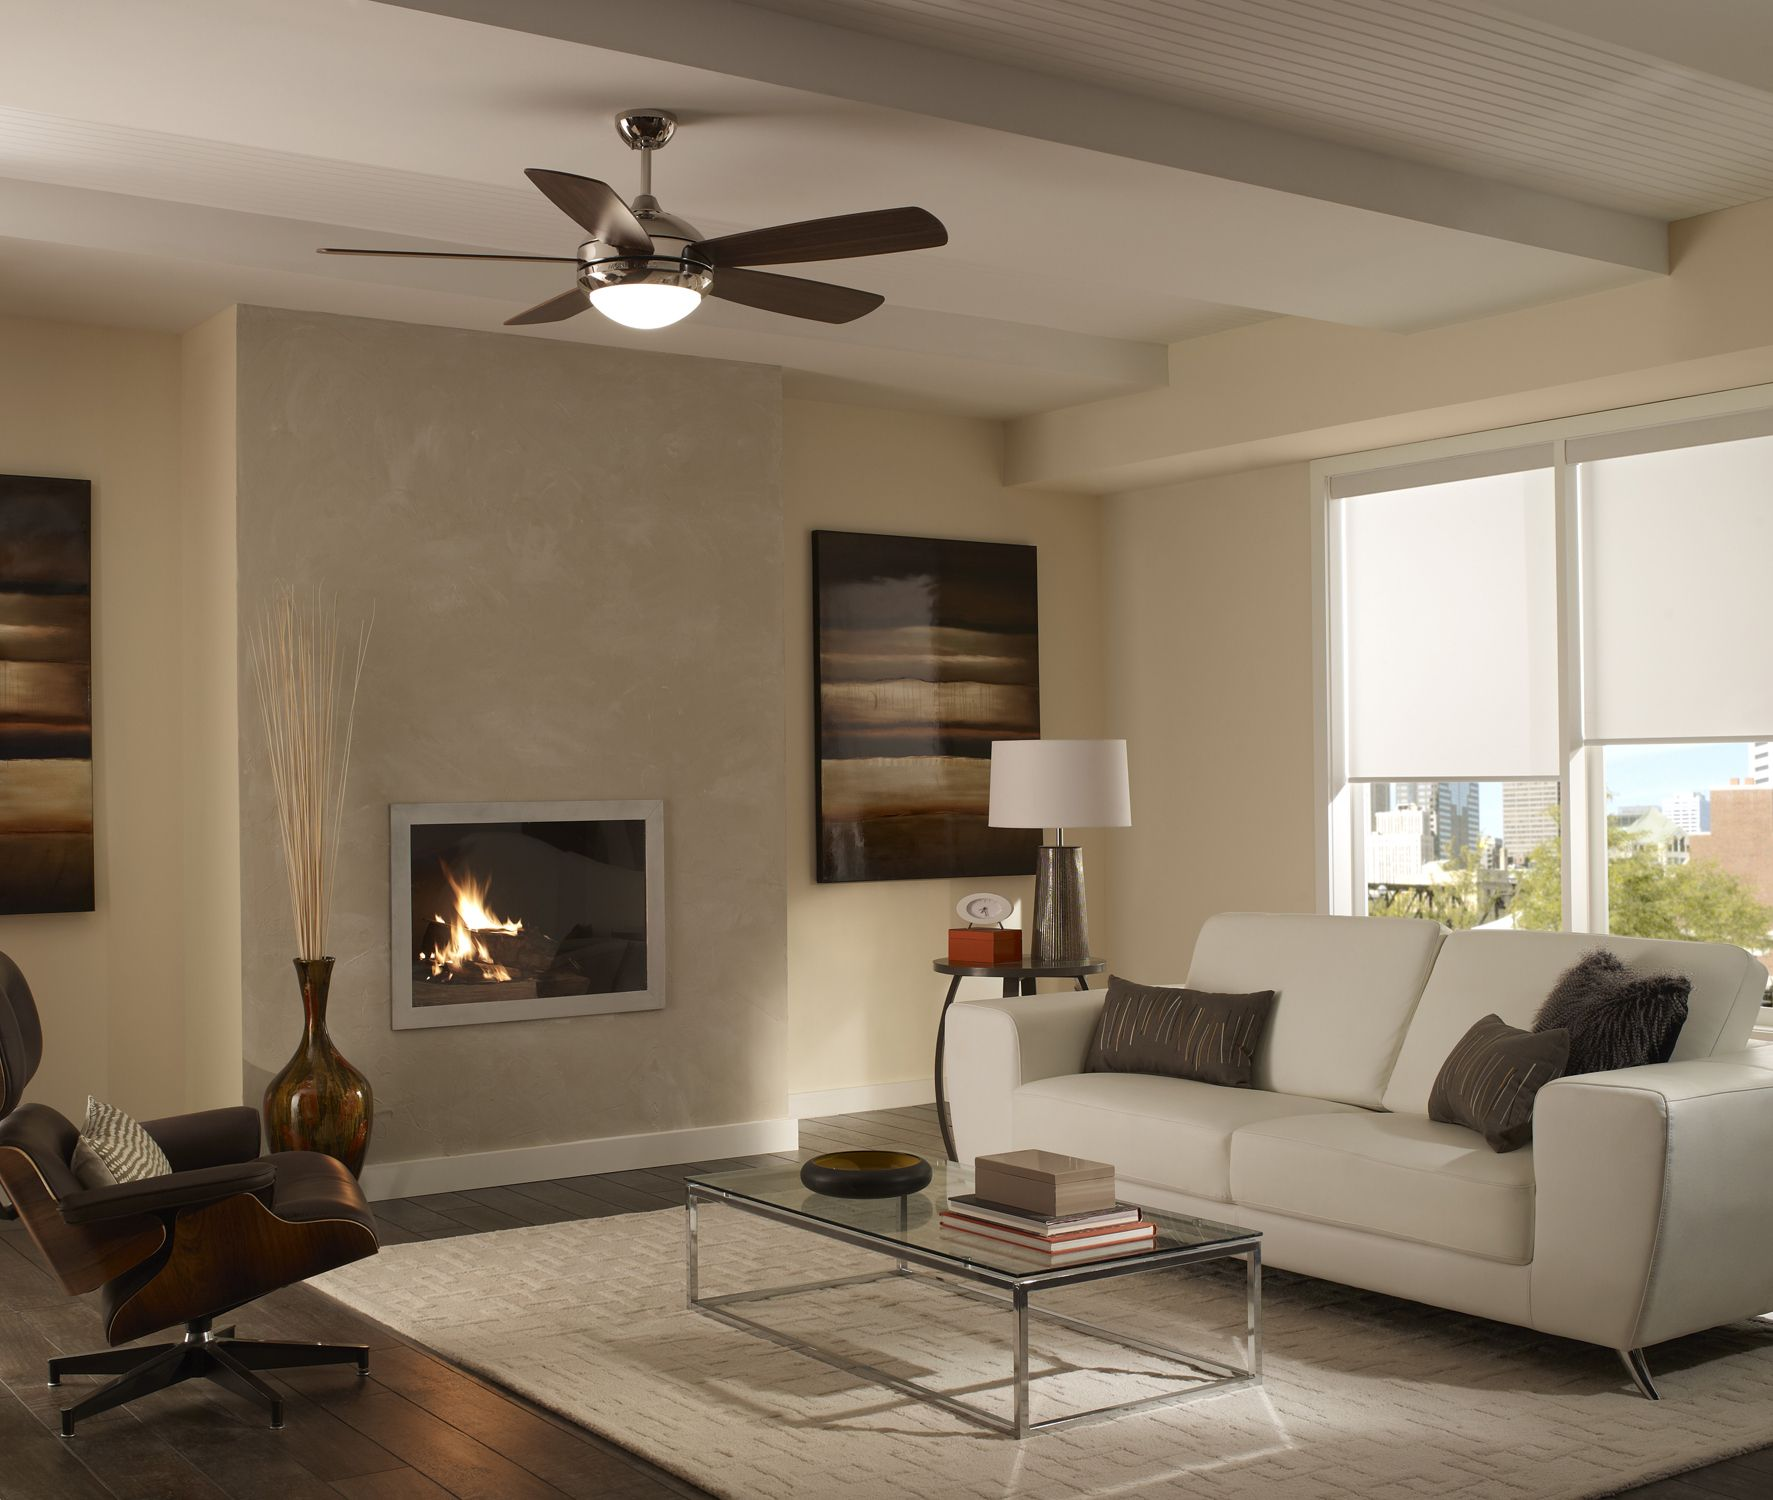 17 best images about living room ceiling fan ideas on pinterest led light kits fans and ceilings